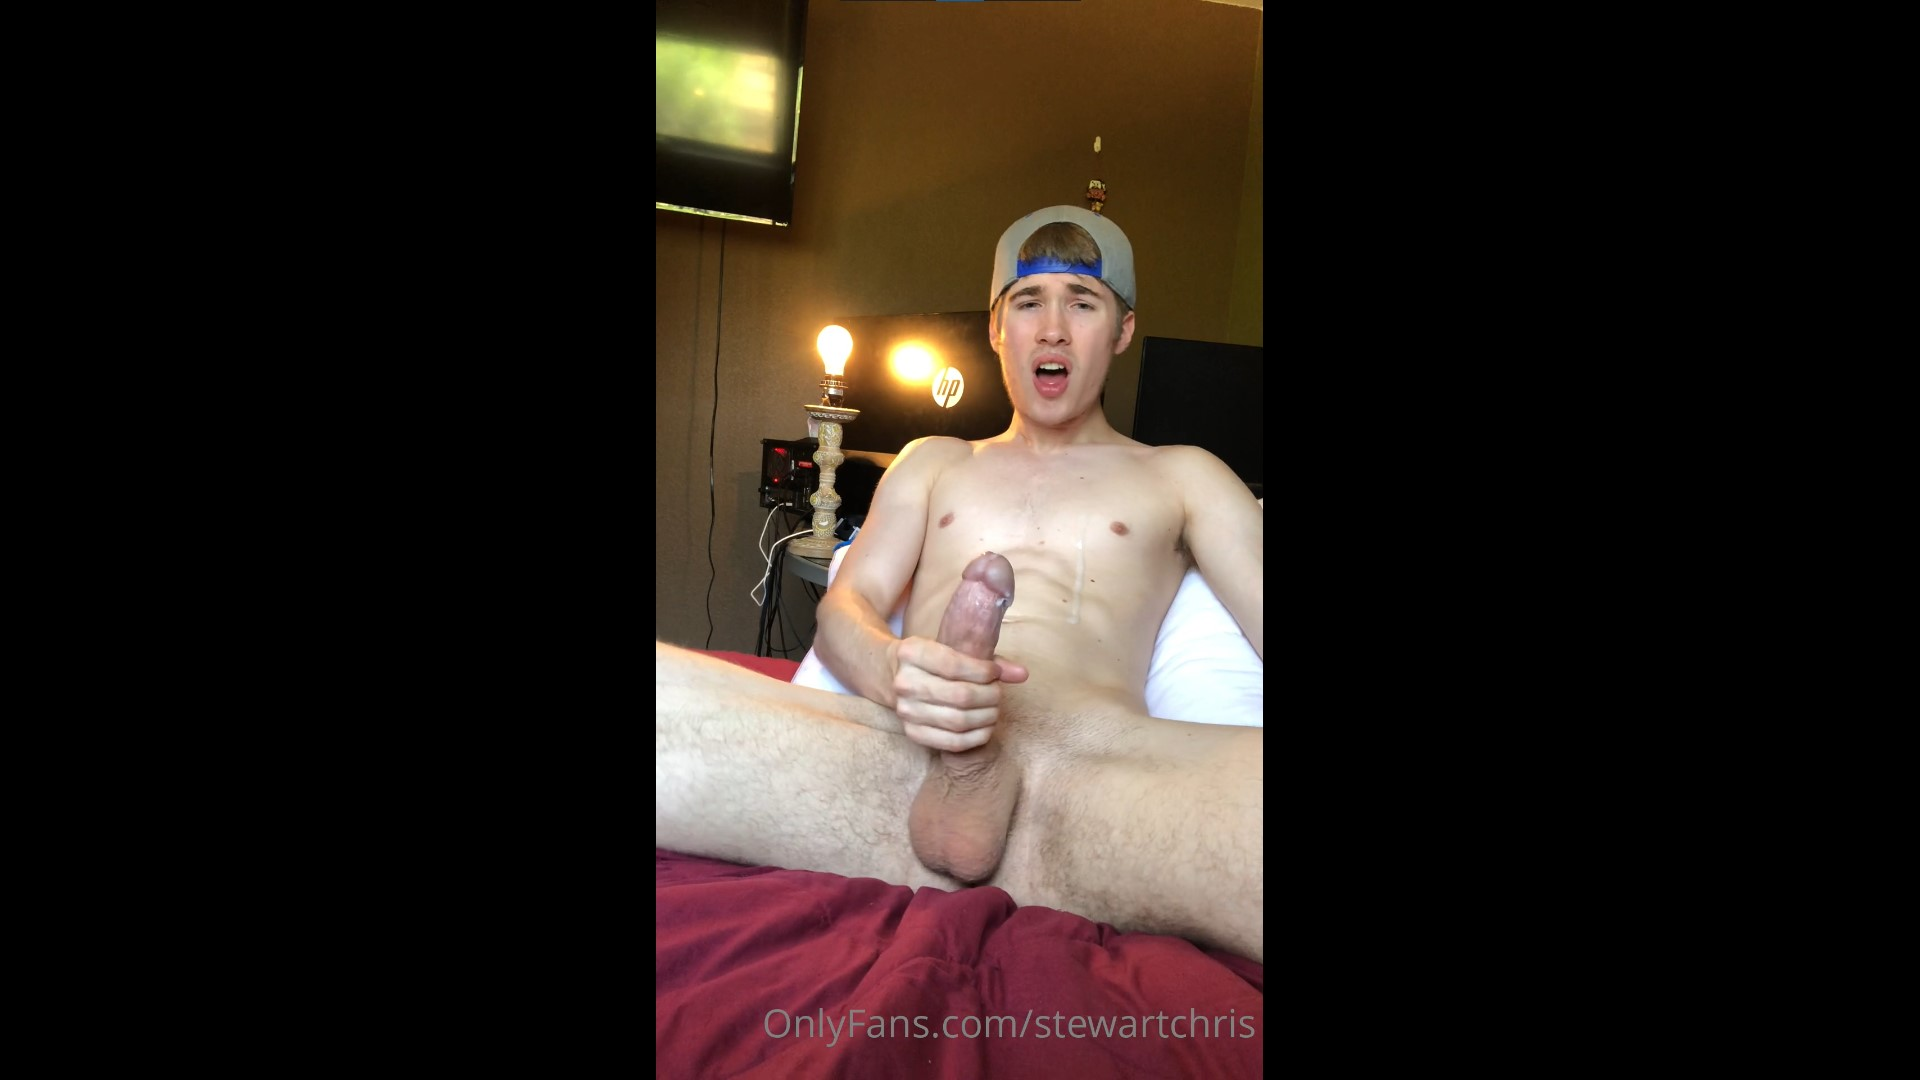 Jerking off and shooting a load over myself - Chris Stewart